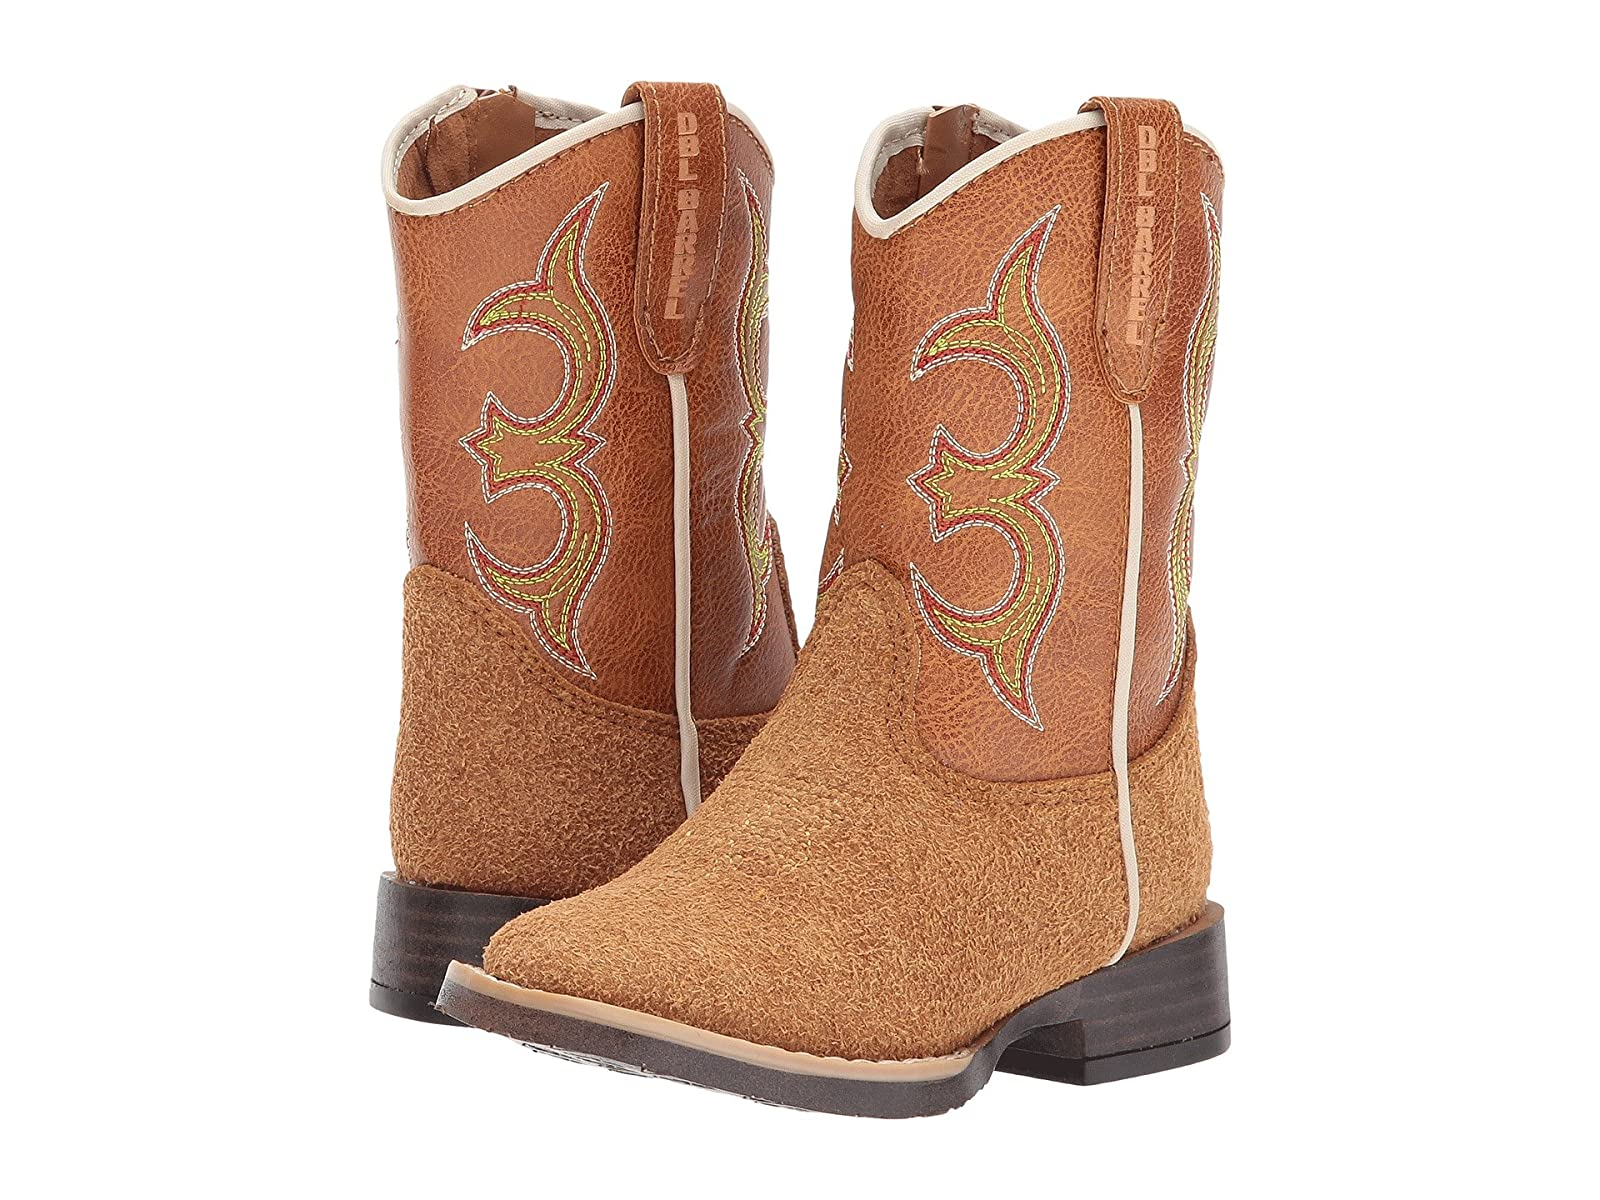 M&F Western Kids Rhett (Toddler)Affordable and distinctive shoes